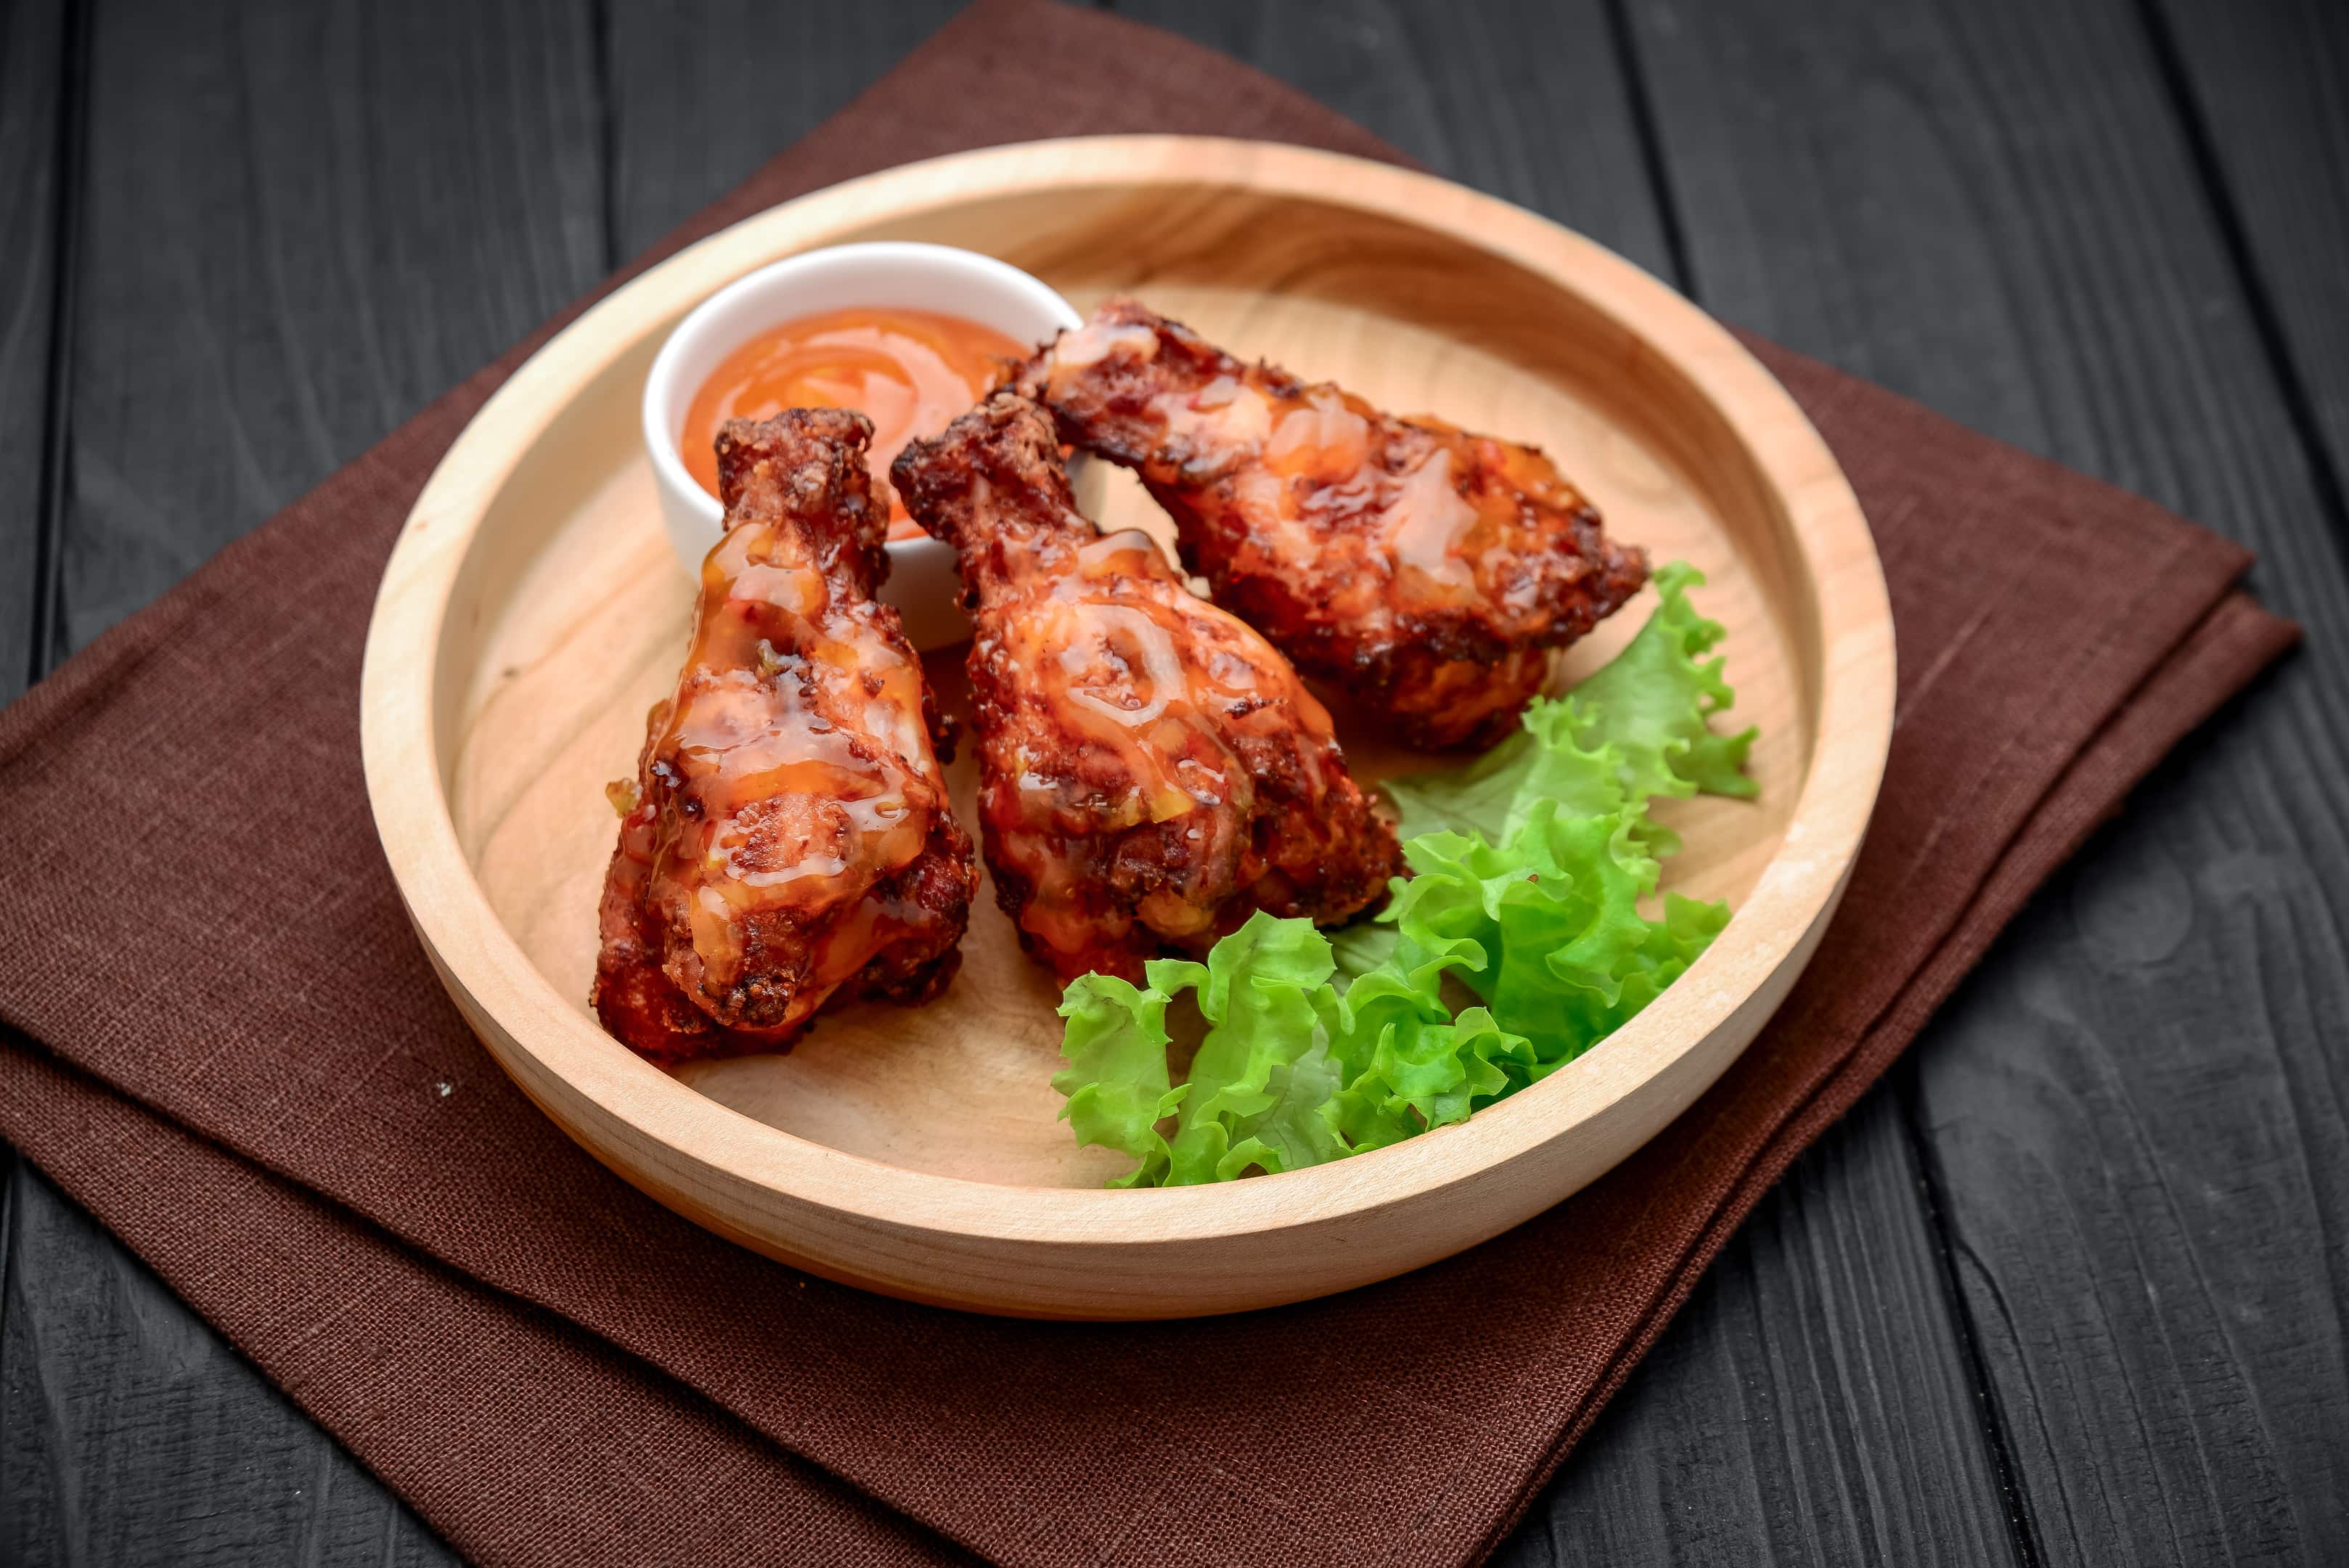 Caribbean jerk chicken wings with spicy chili sauce on wooden plate